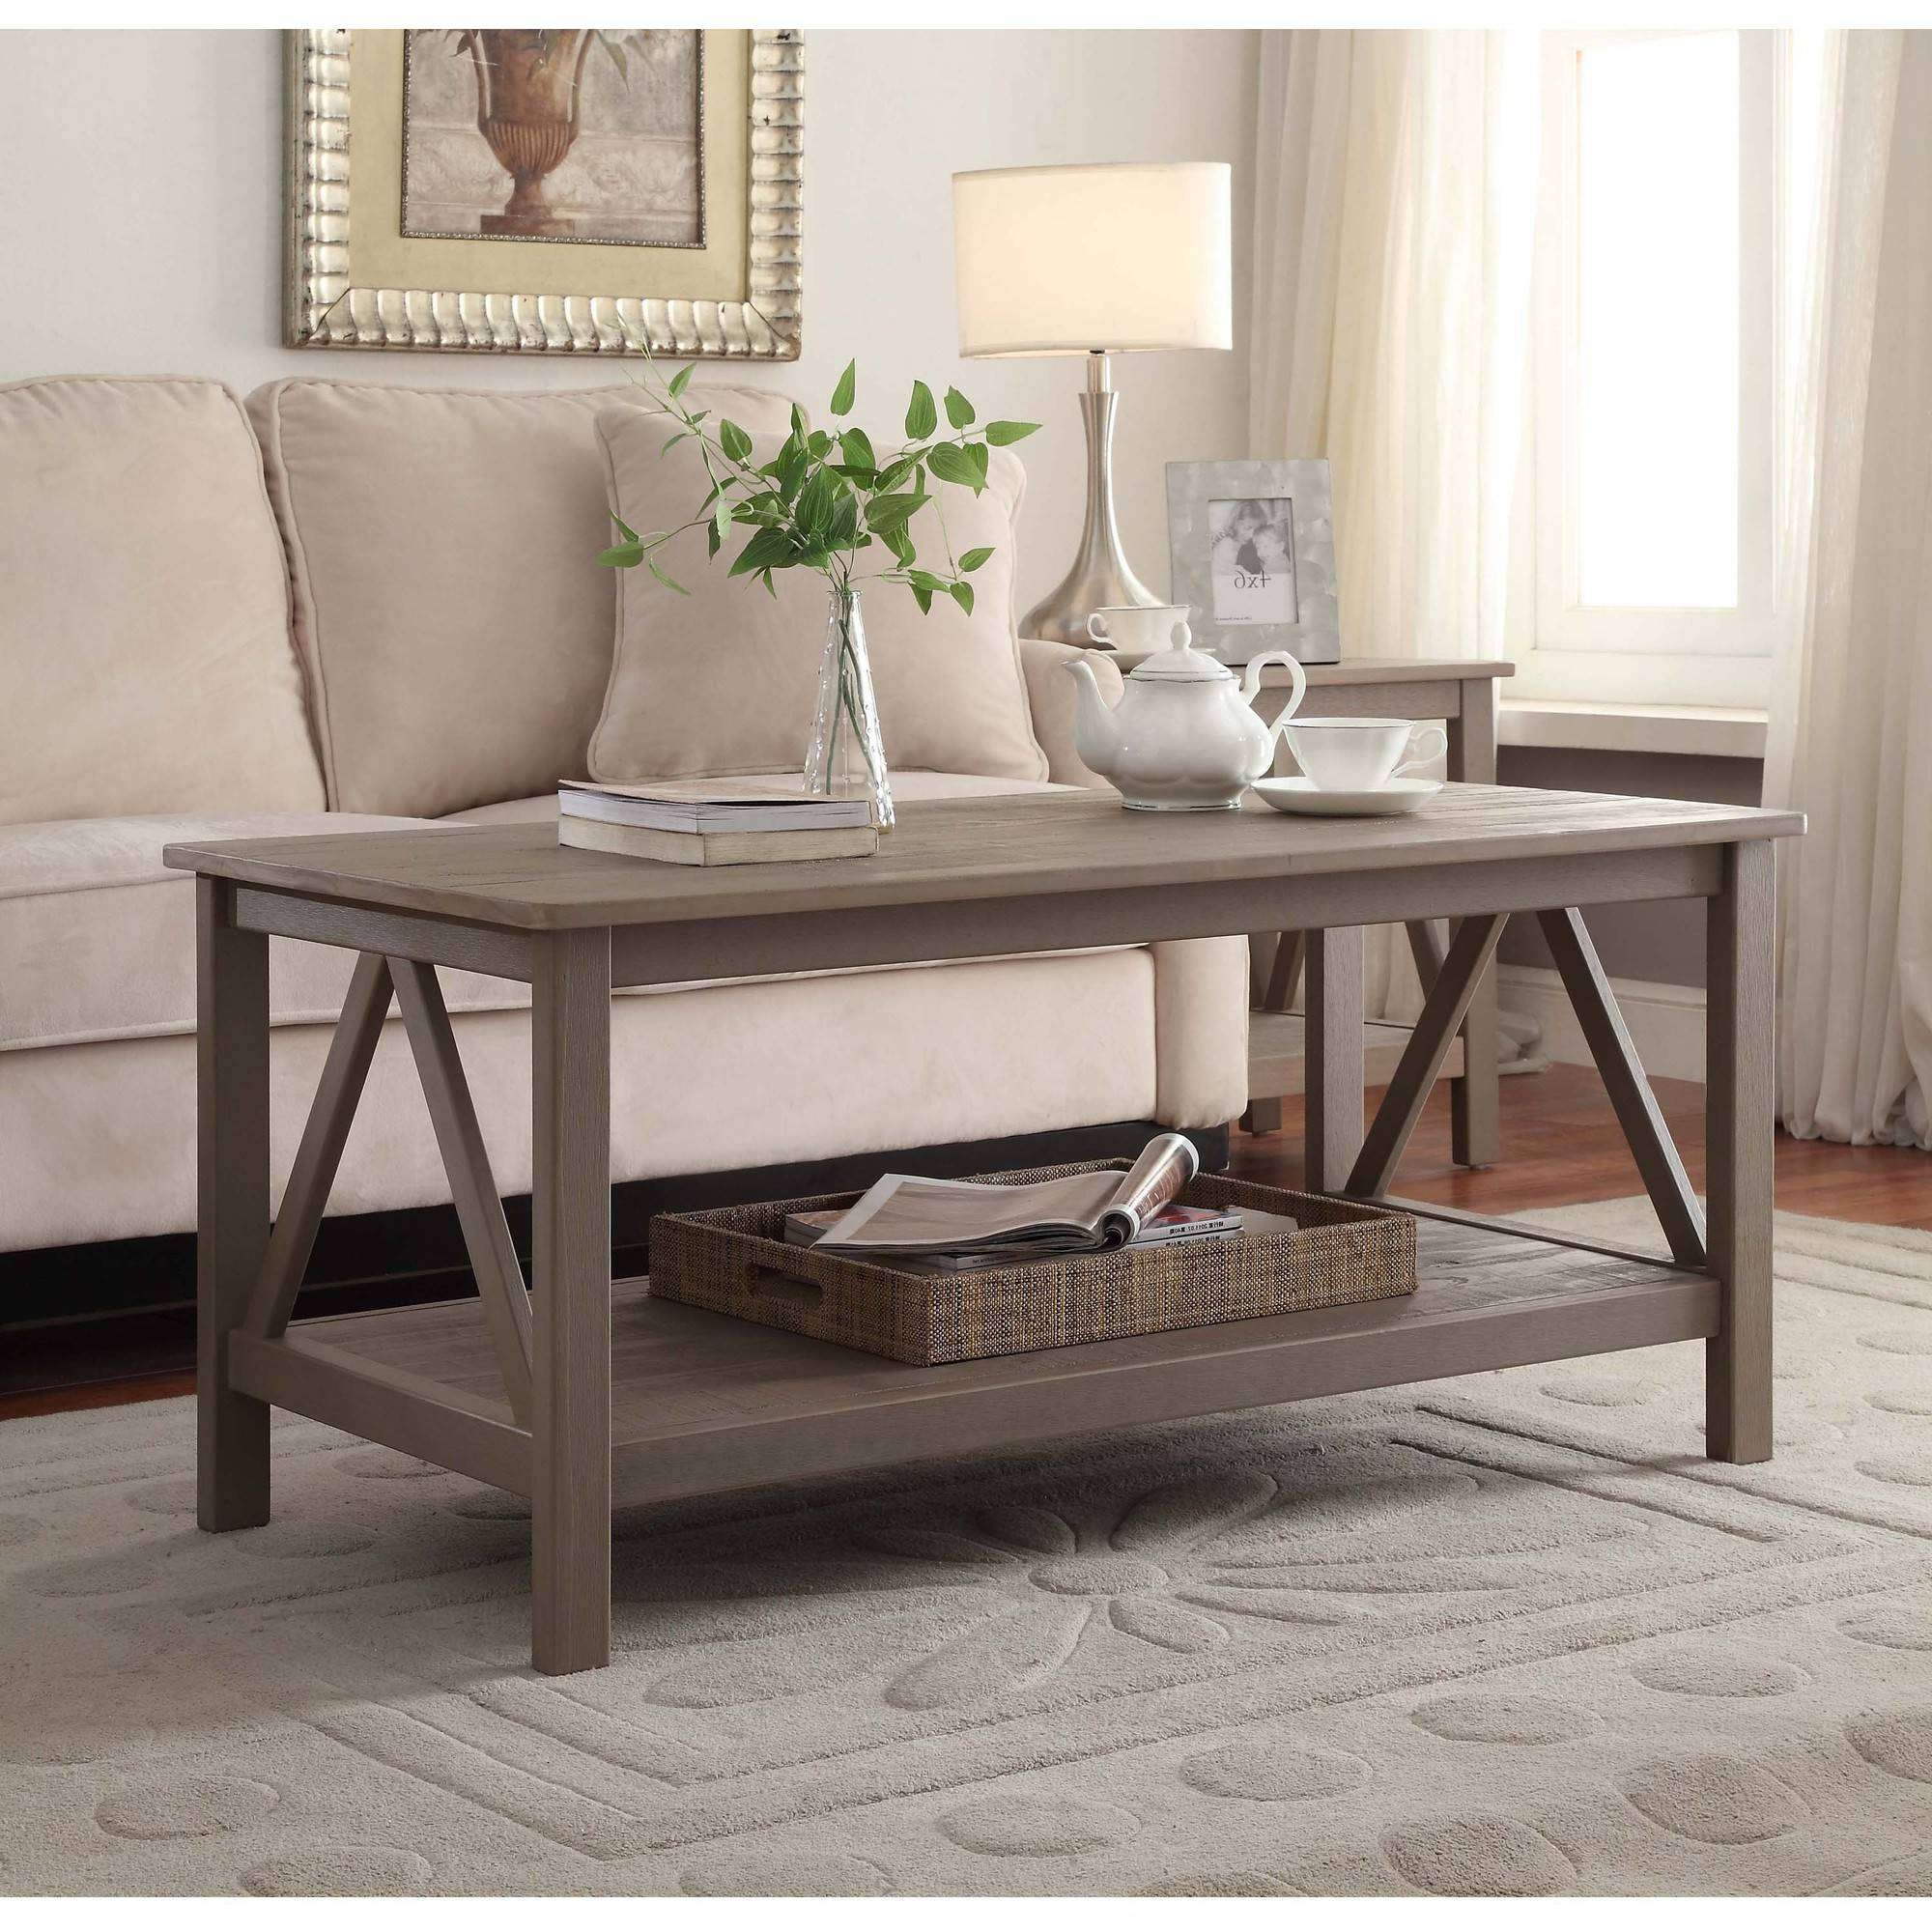 Most Recent Grey Coffee Tables With Regard To Linon Titian Coffee Table, Rustic Gray, 20 Inches Tall – Walmart (View 17 of 20)